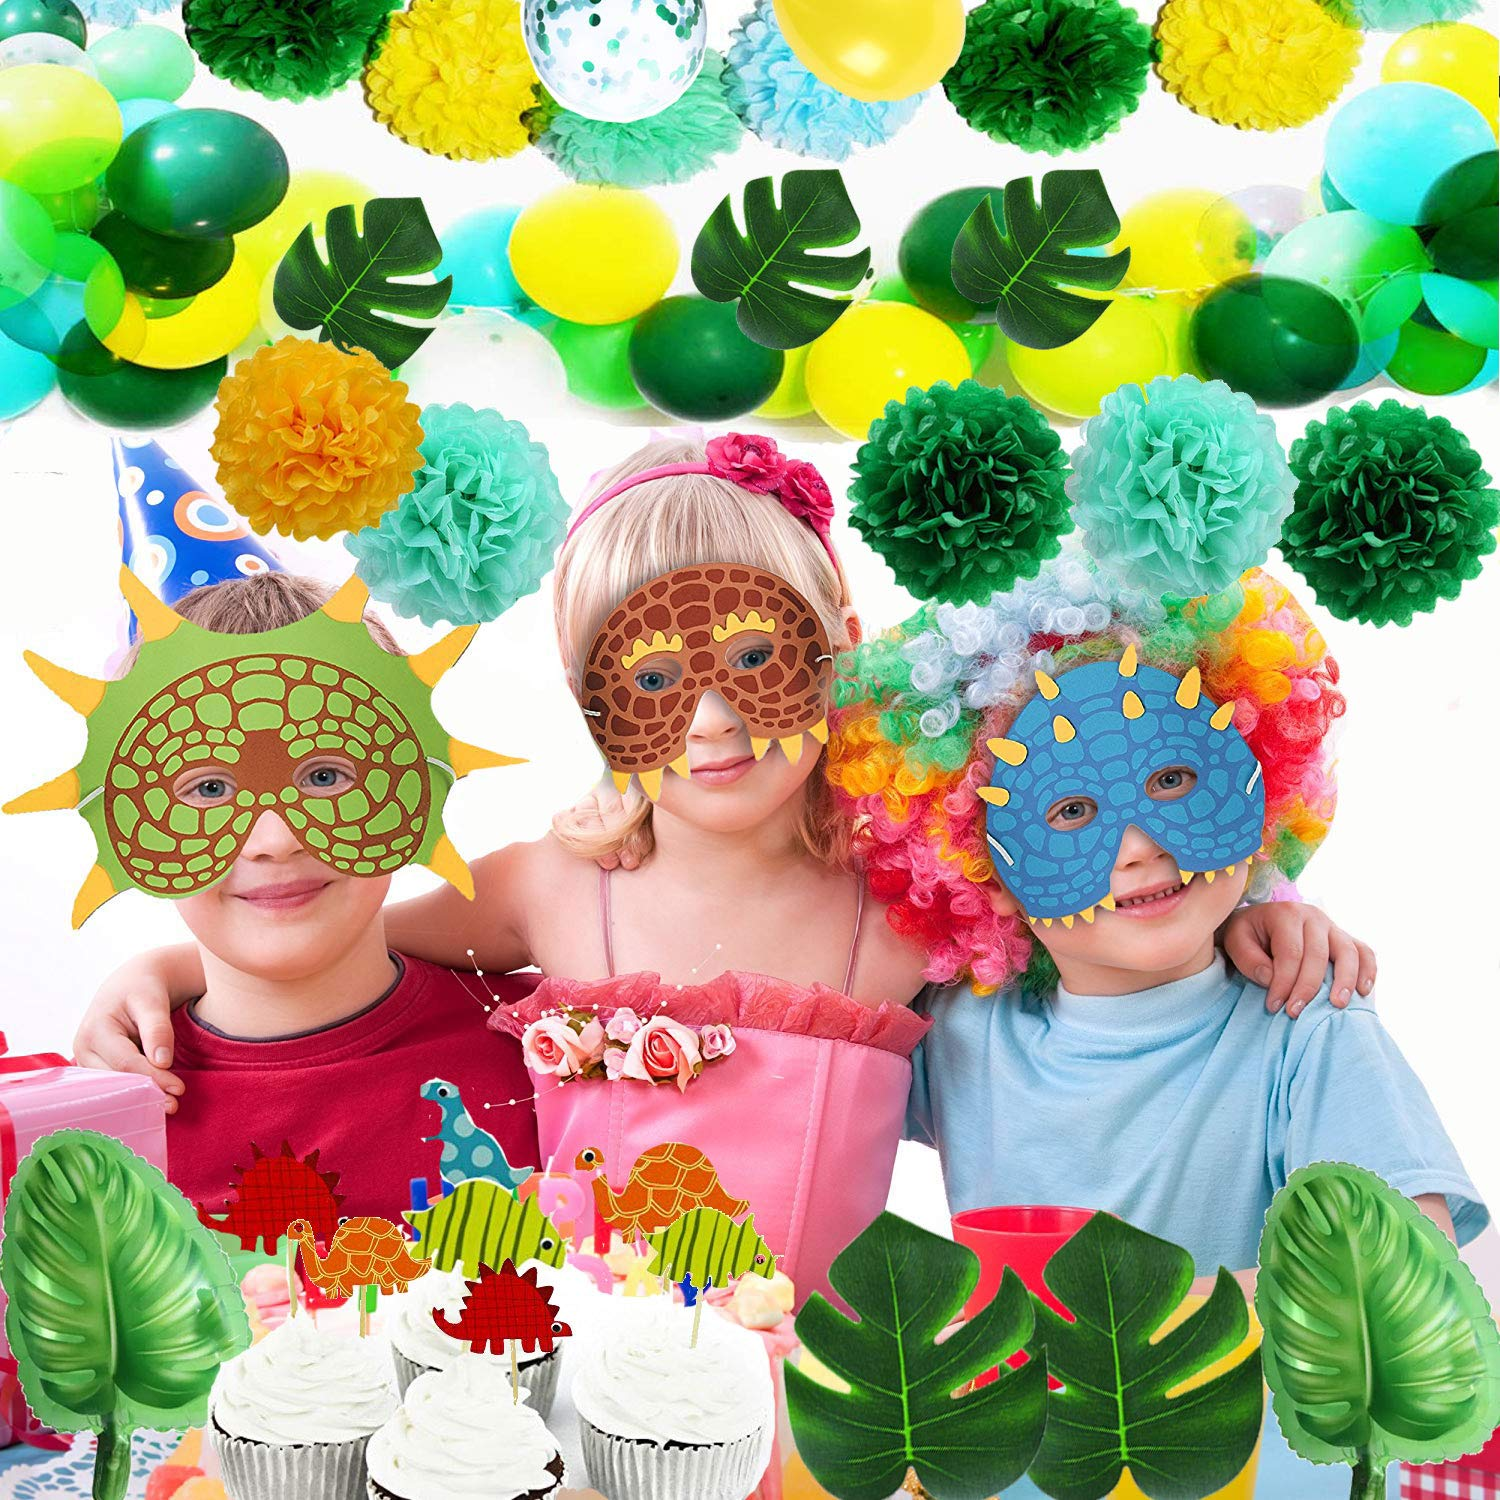 Funnlot Dinosaur Party Supplies 94PCS Dino Party Favors Including RWAR Latex Balloons Dino Masks Dino Banners Cake Toppers Tattoos Tropical palm leaves and poms flowers for/boys/Baby Shower Party